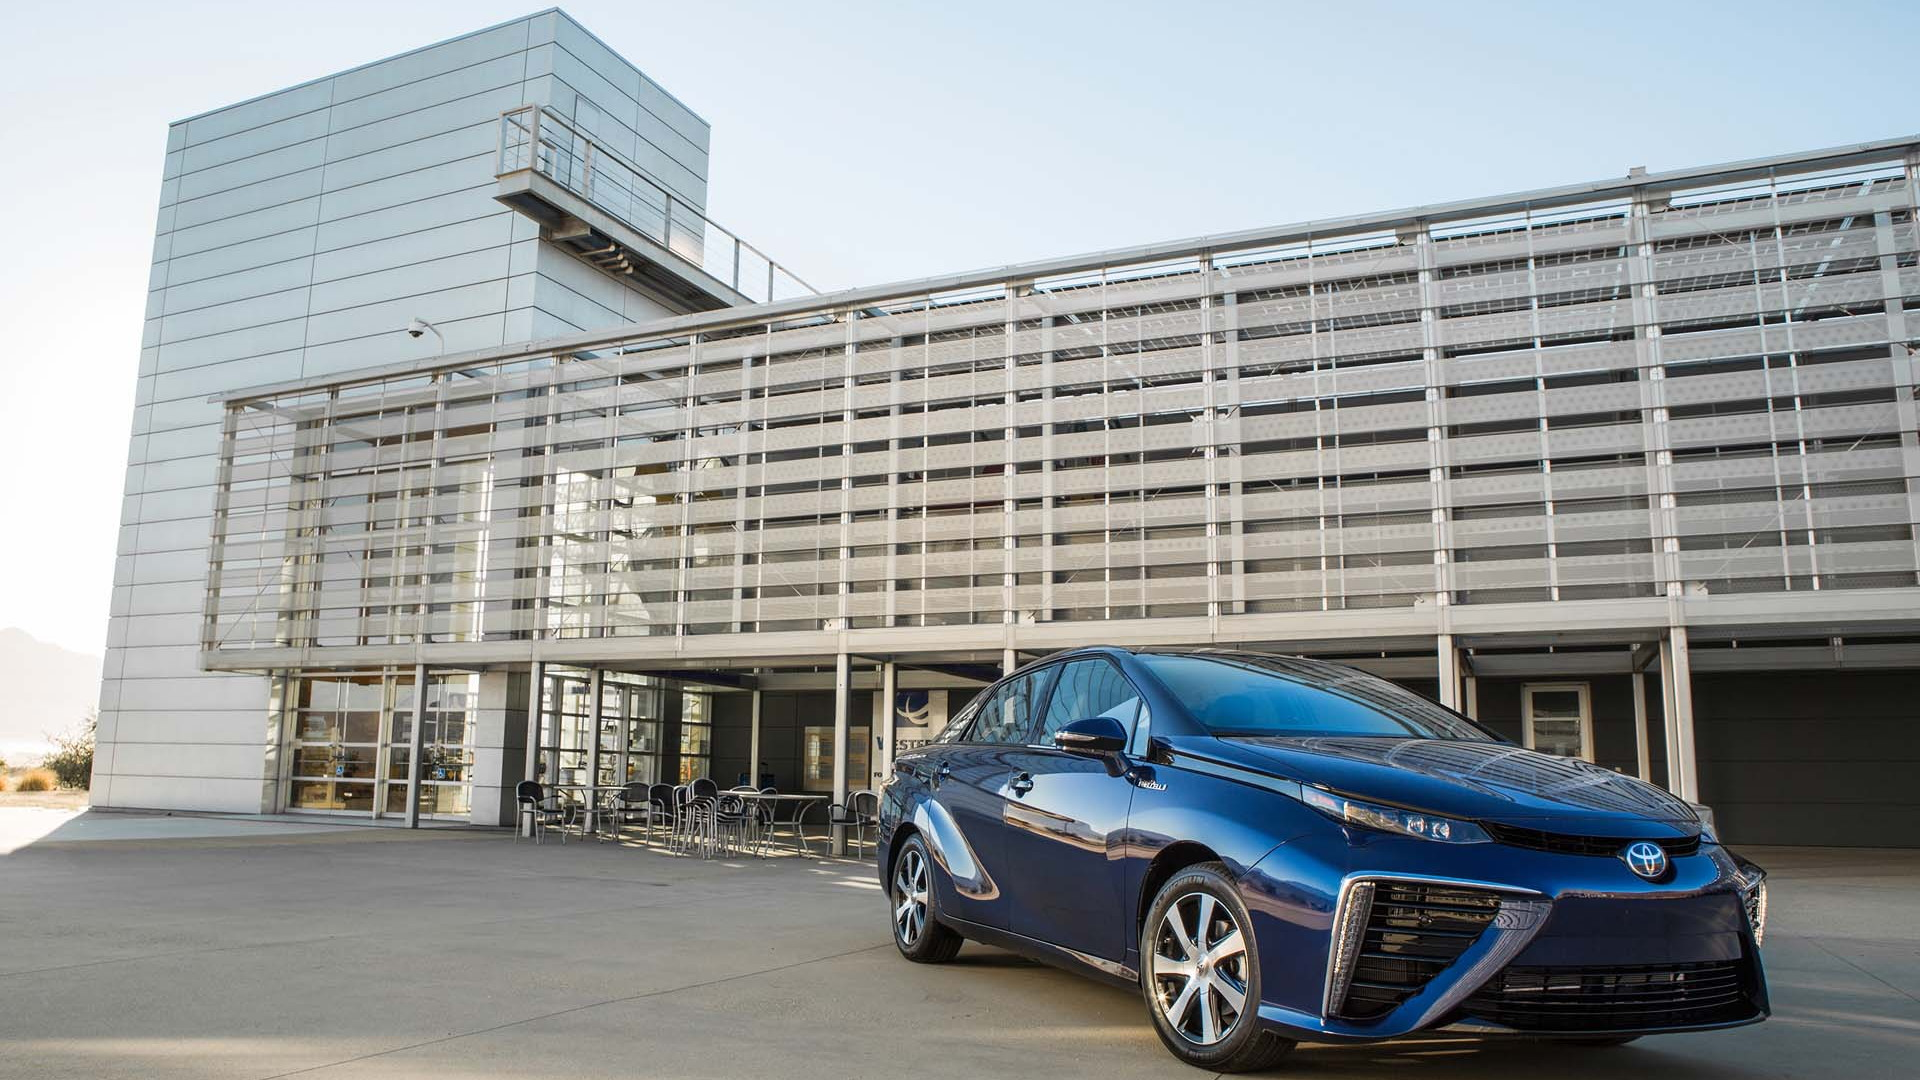 Fuel Cell - Green Car Photos, News, Reviews, and Insights